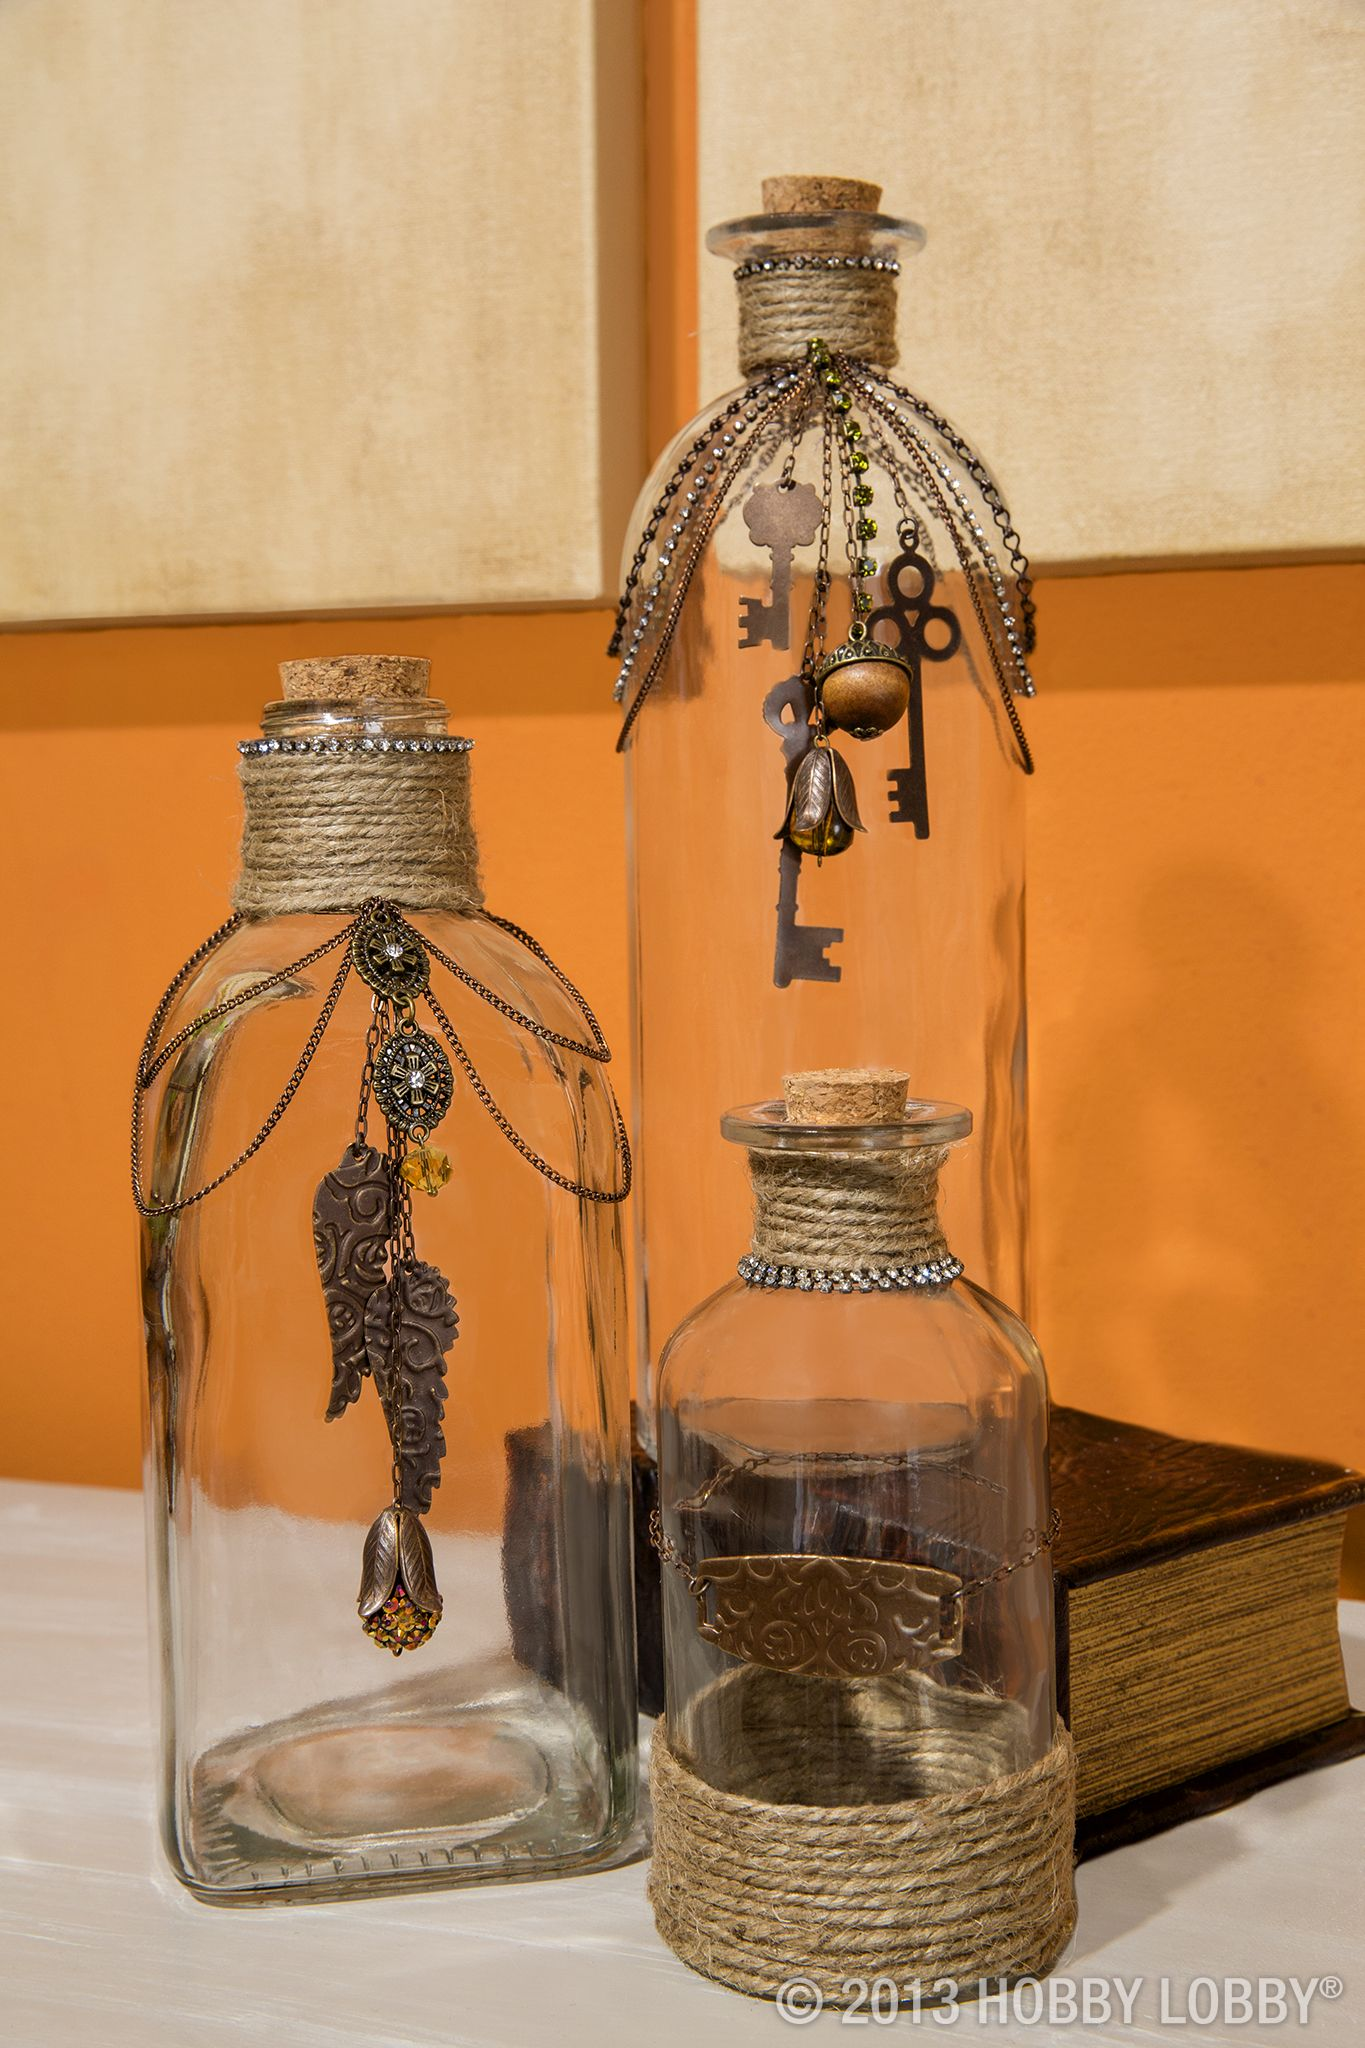 Decorate A Jar Upcycle Glass Bottles With Twine And Jewelry Accents For An Easy